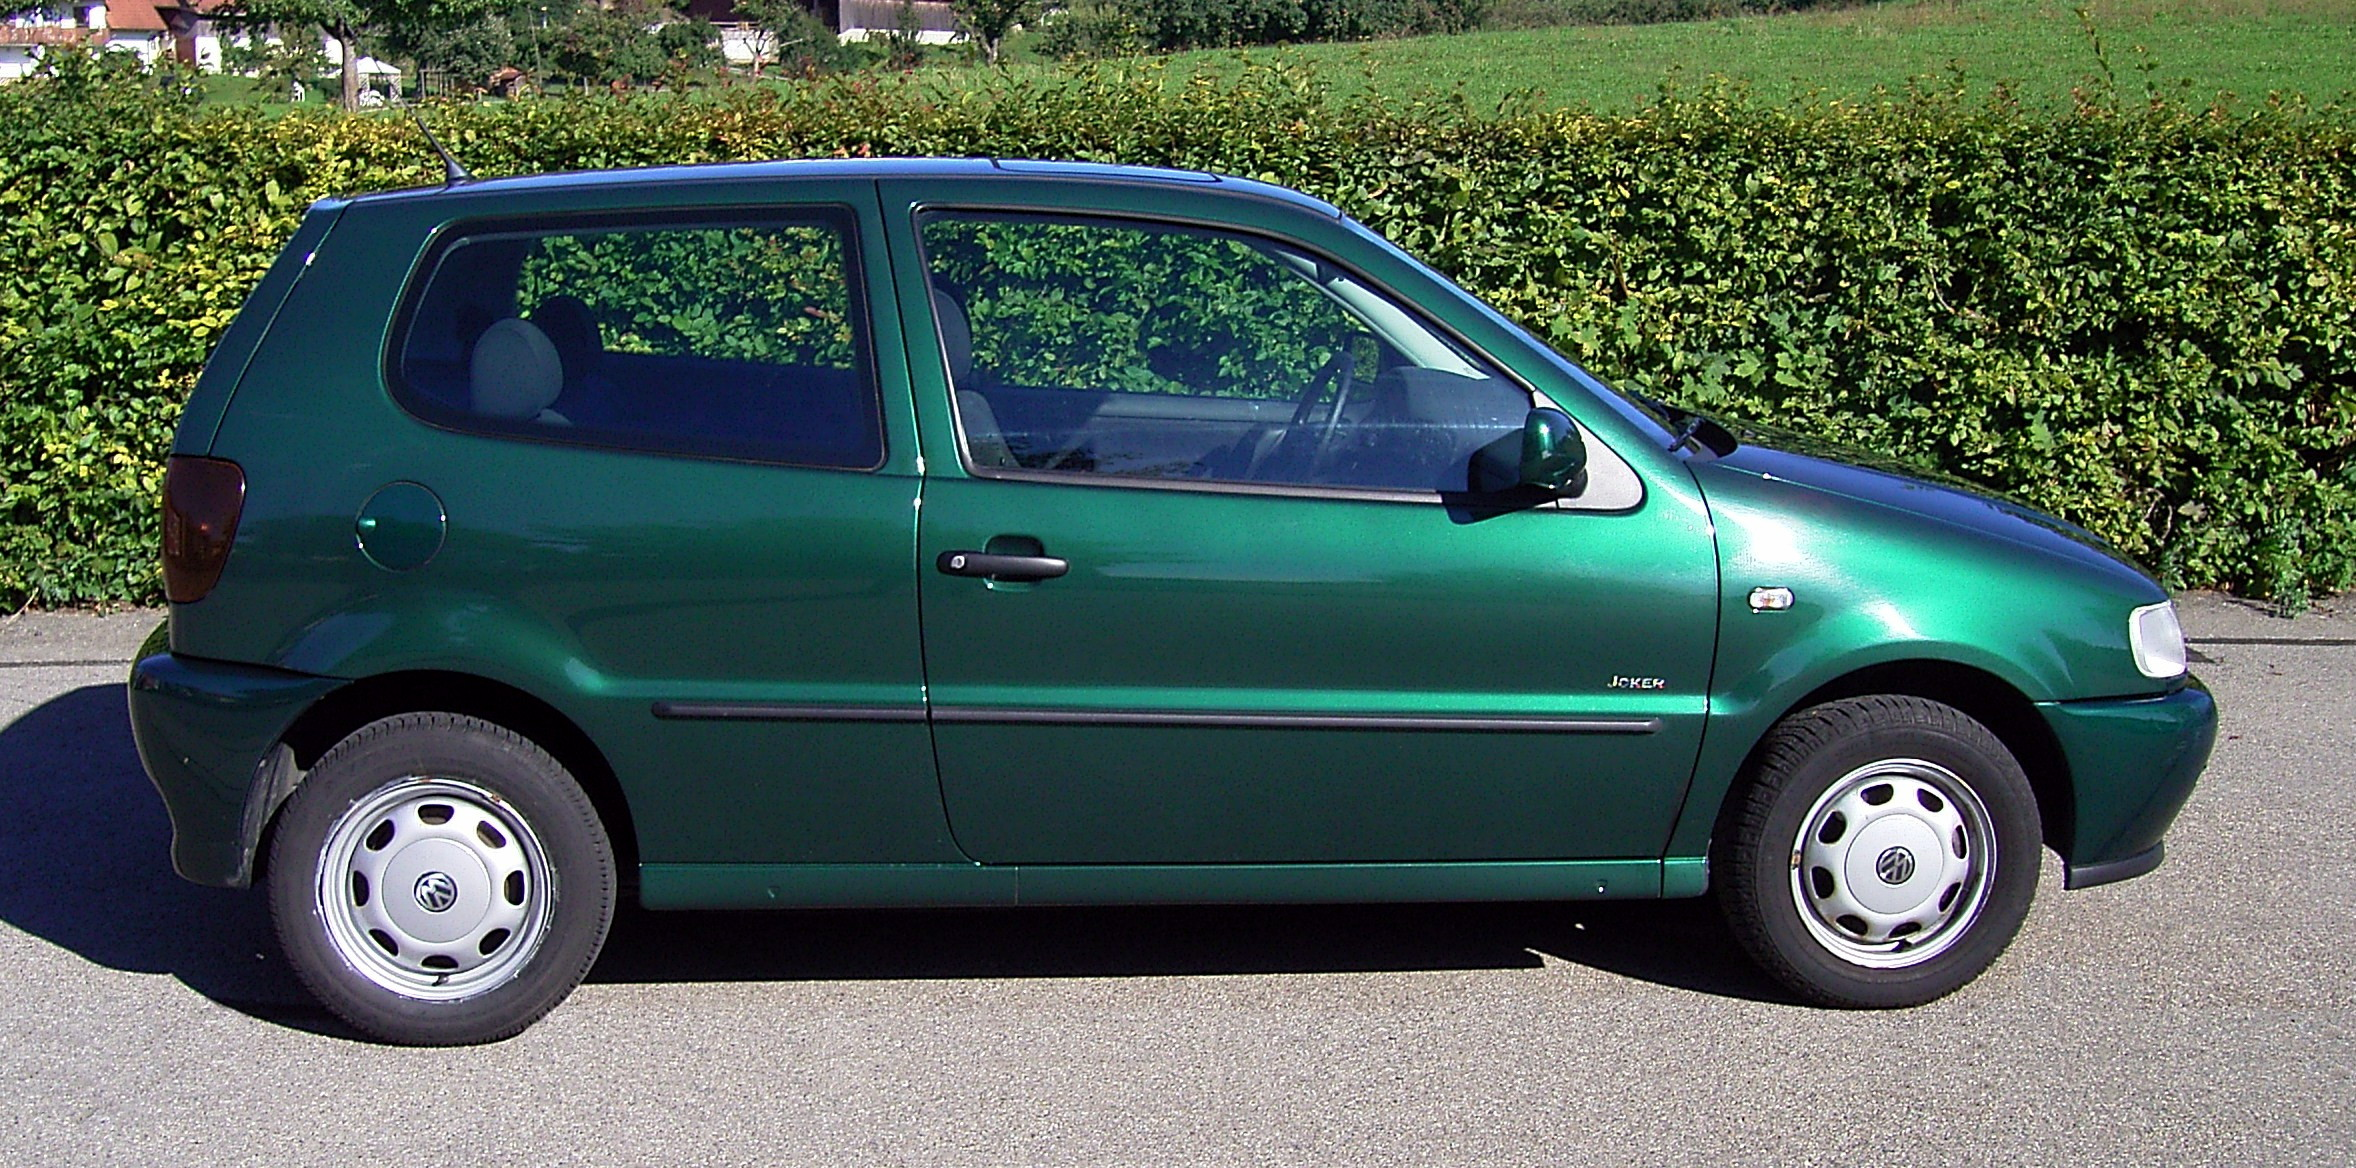 VW Polo photo 05